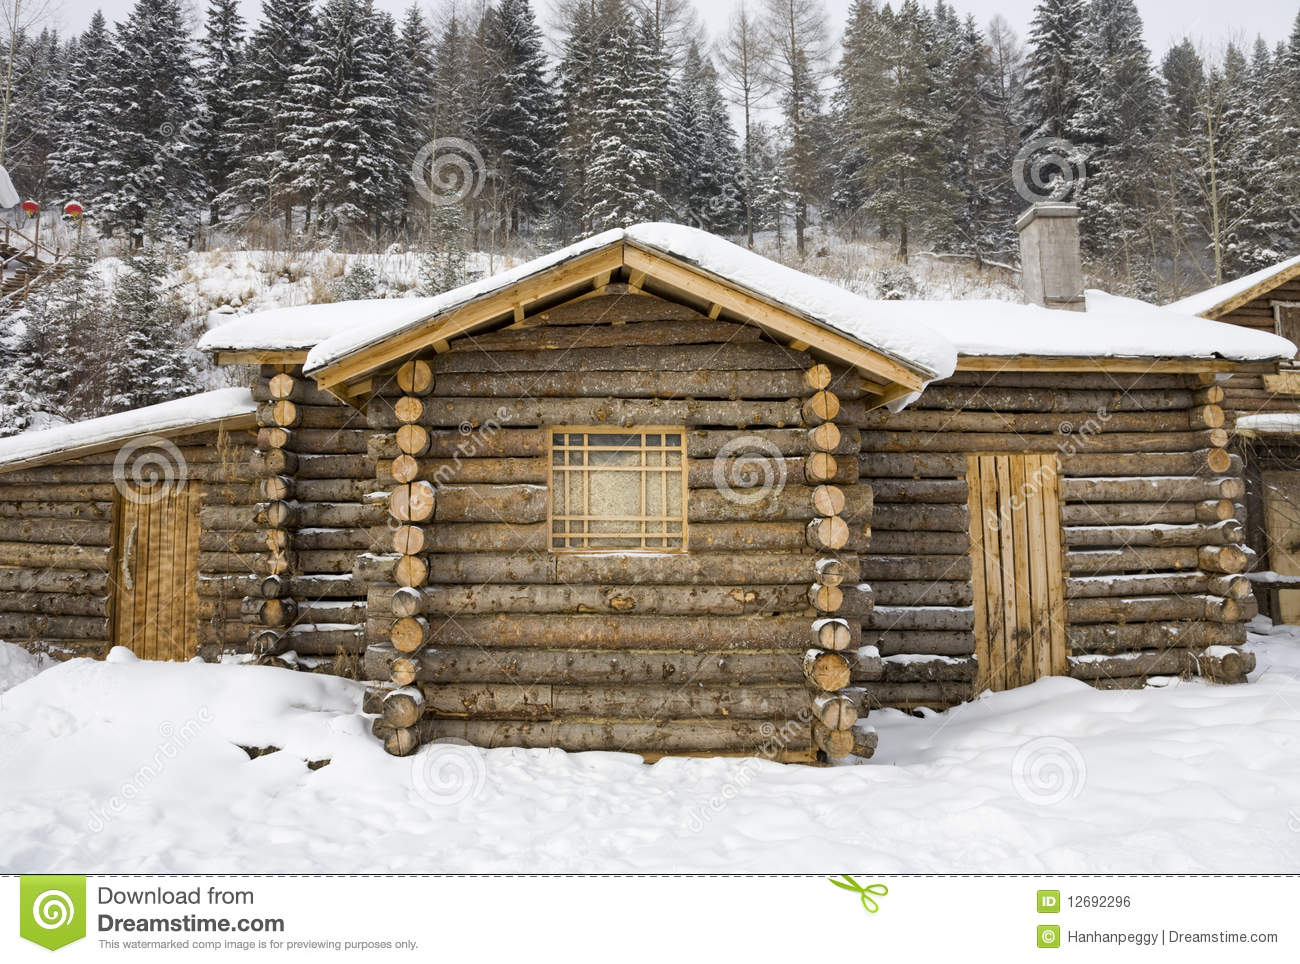 Very Impressive portraiture of Log Cabin Royalty Free Stock Image Image: 12692296 with #82A328 color and 1300x964 pixels